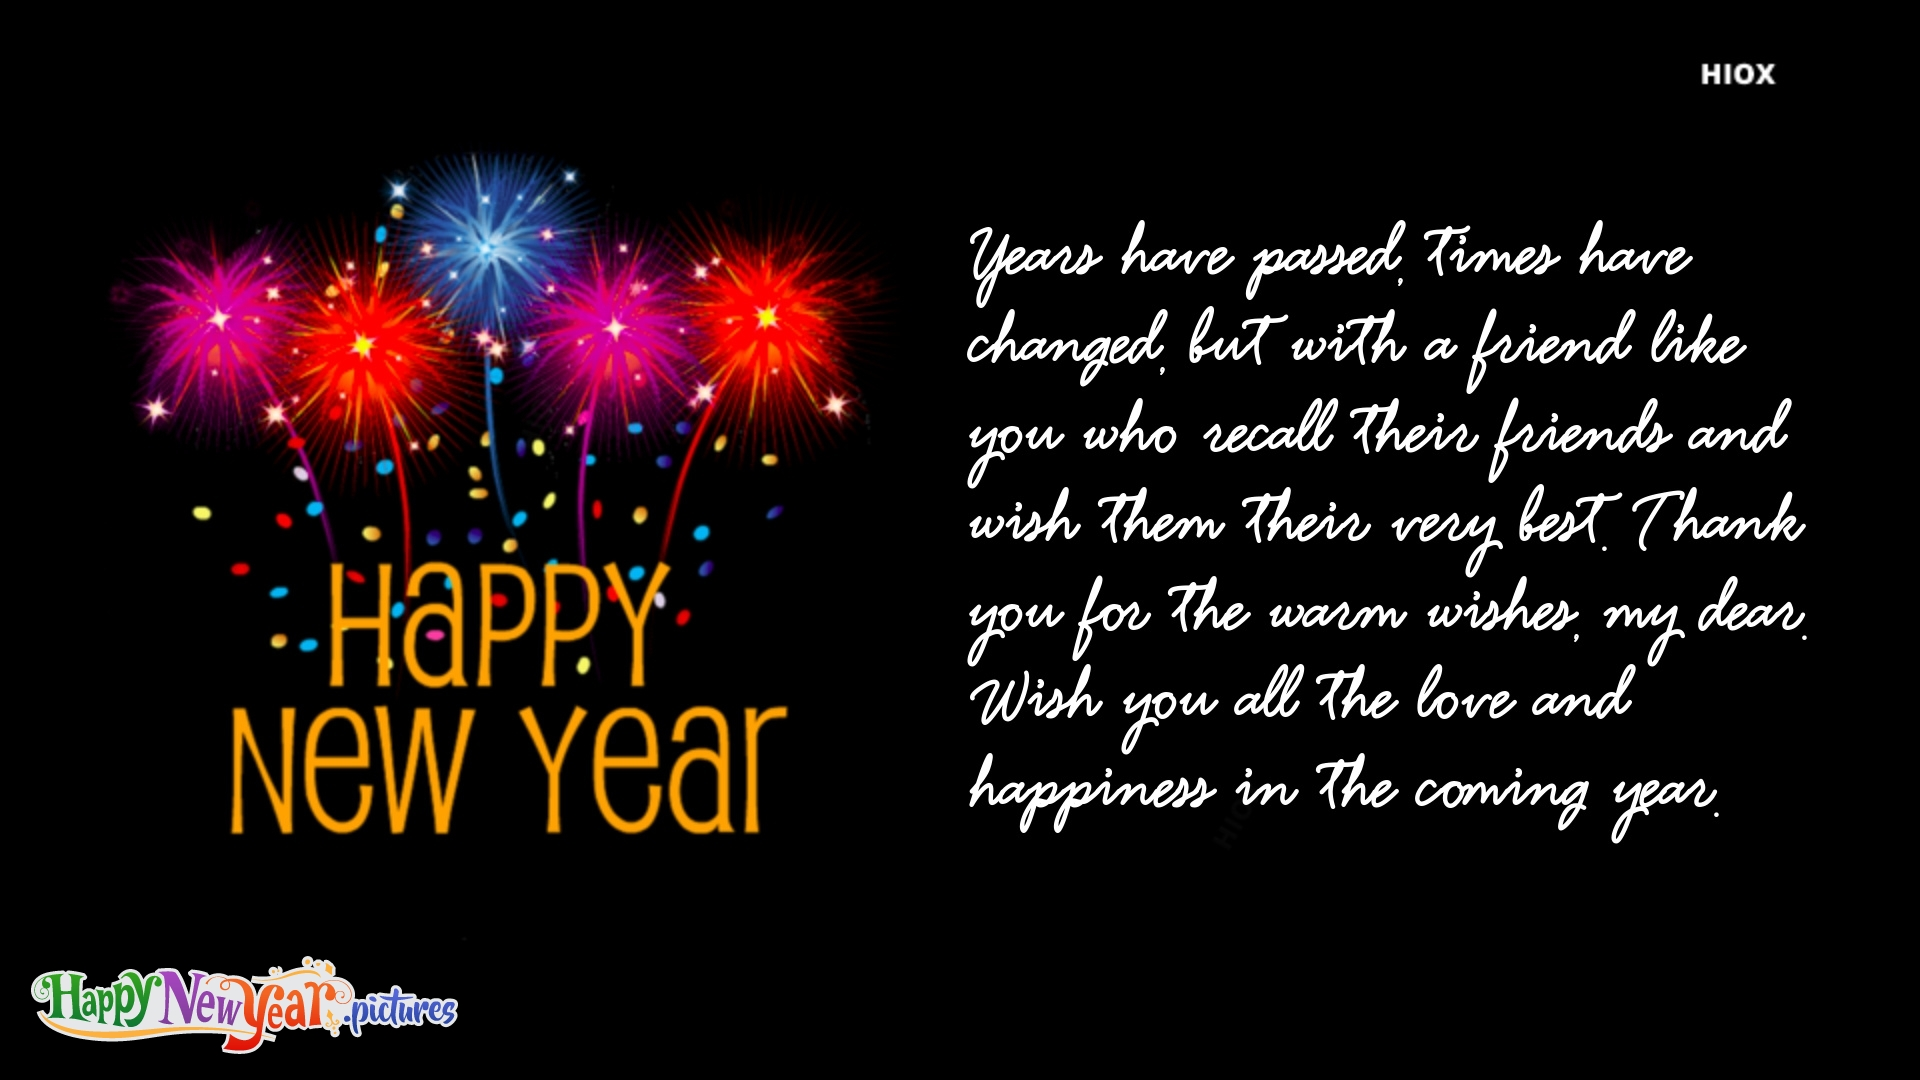 Happy New Year and Thank You